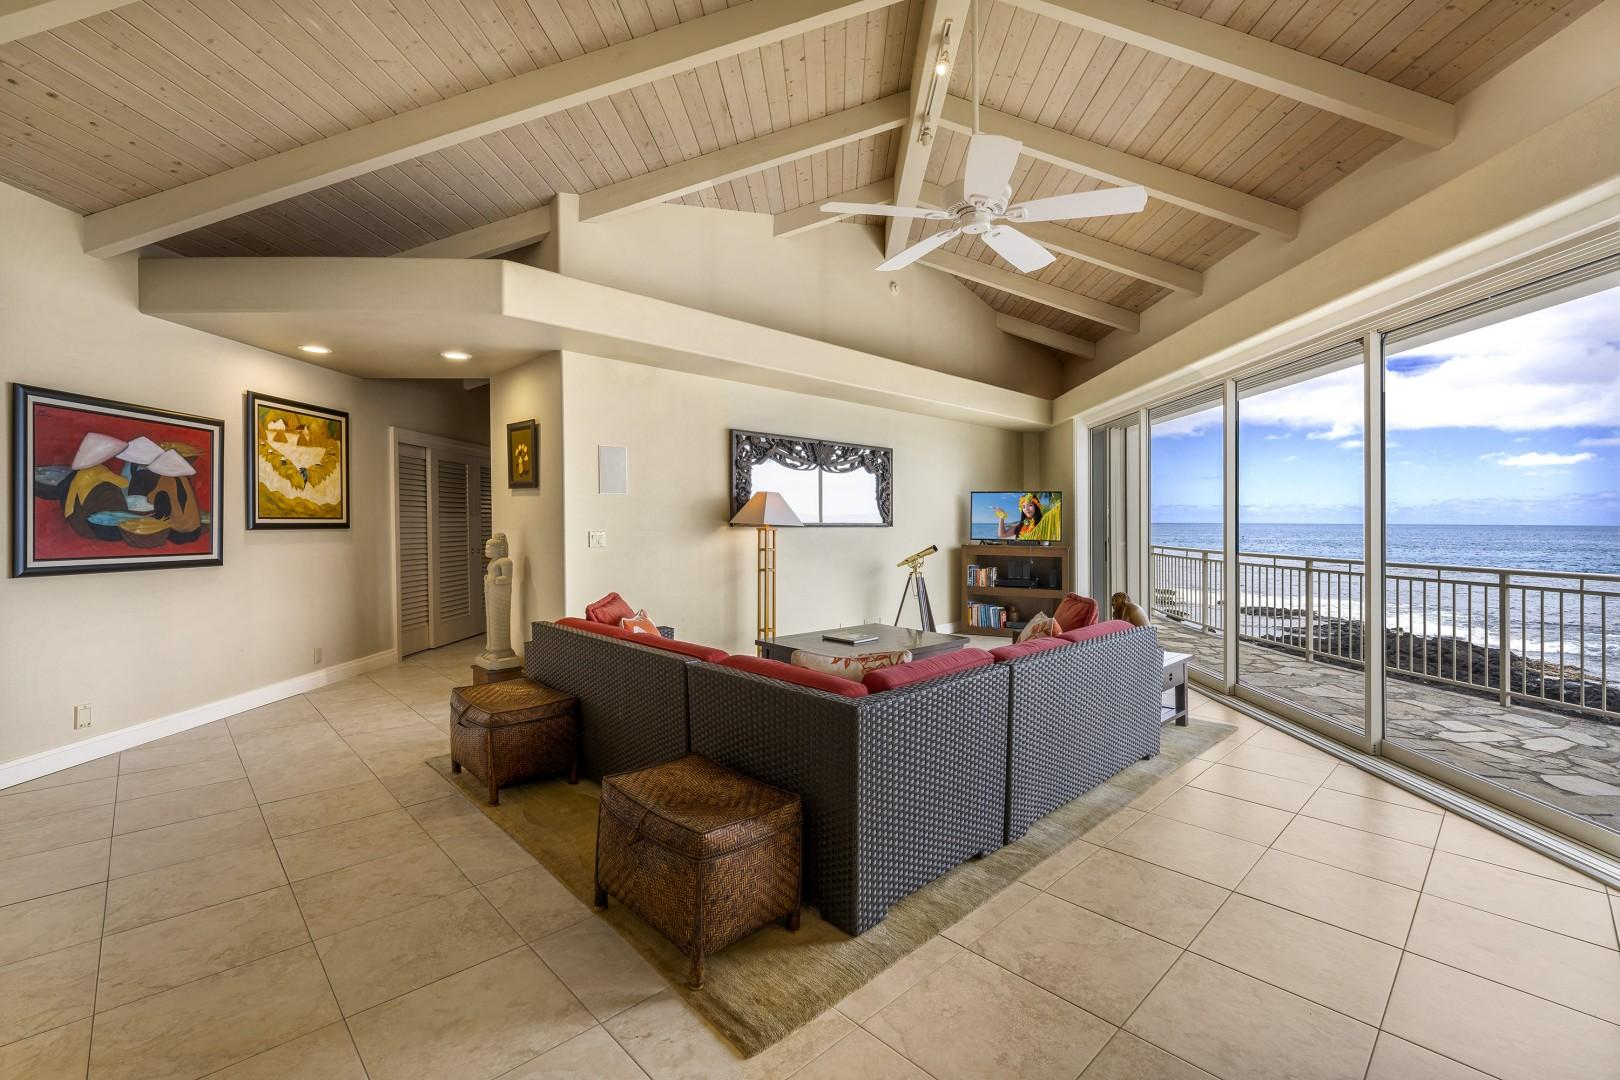 Whether you prefer to watch TV or take in the views the choice is yours!